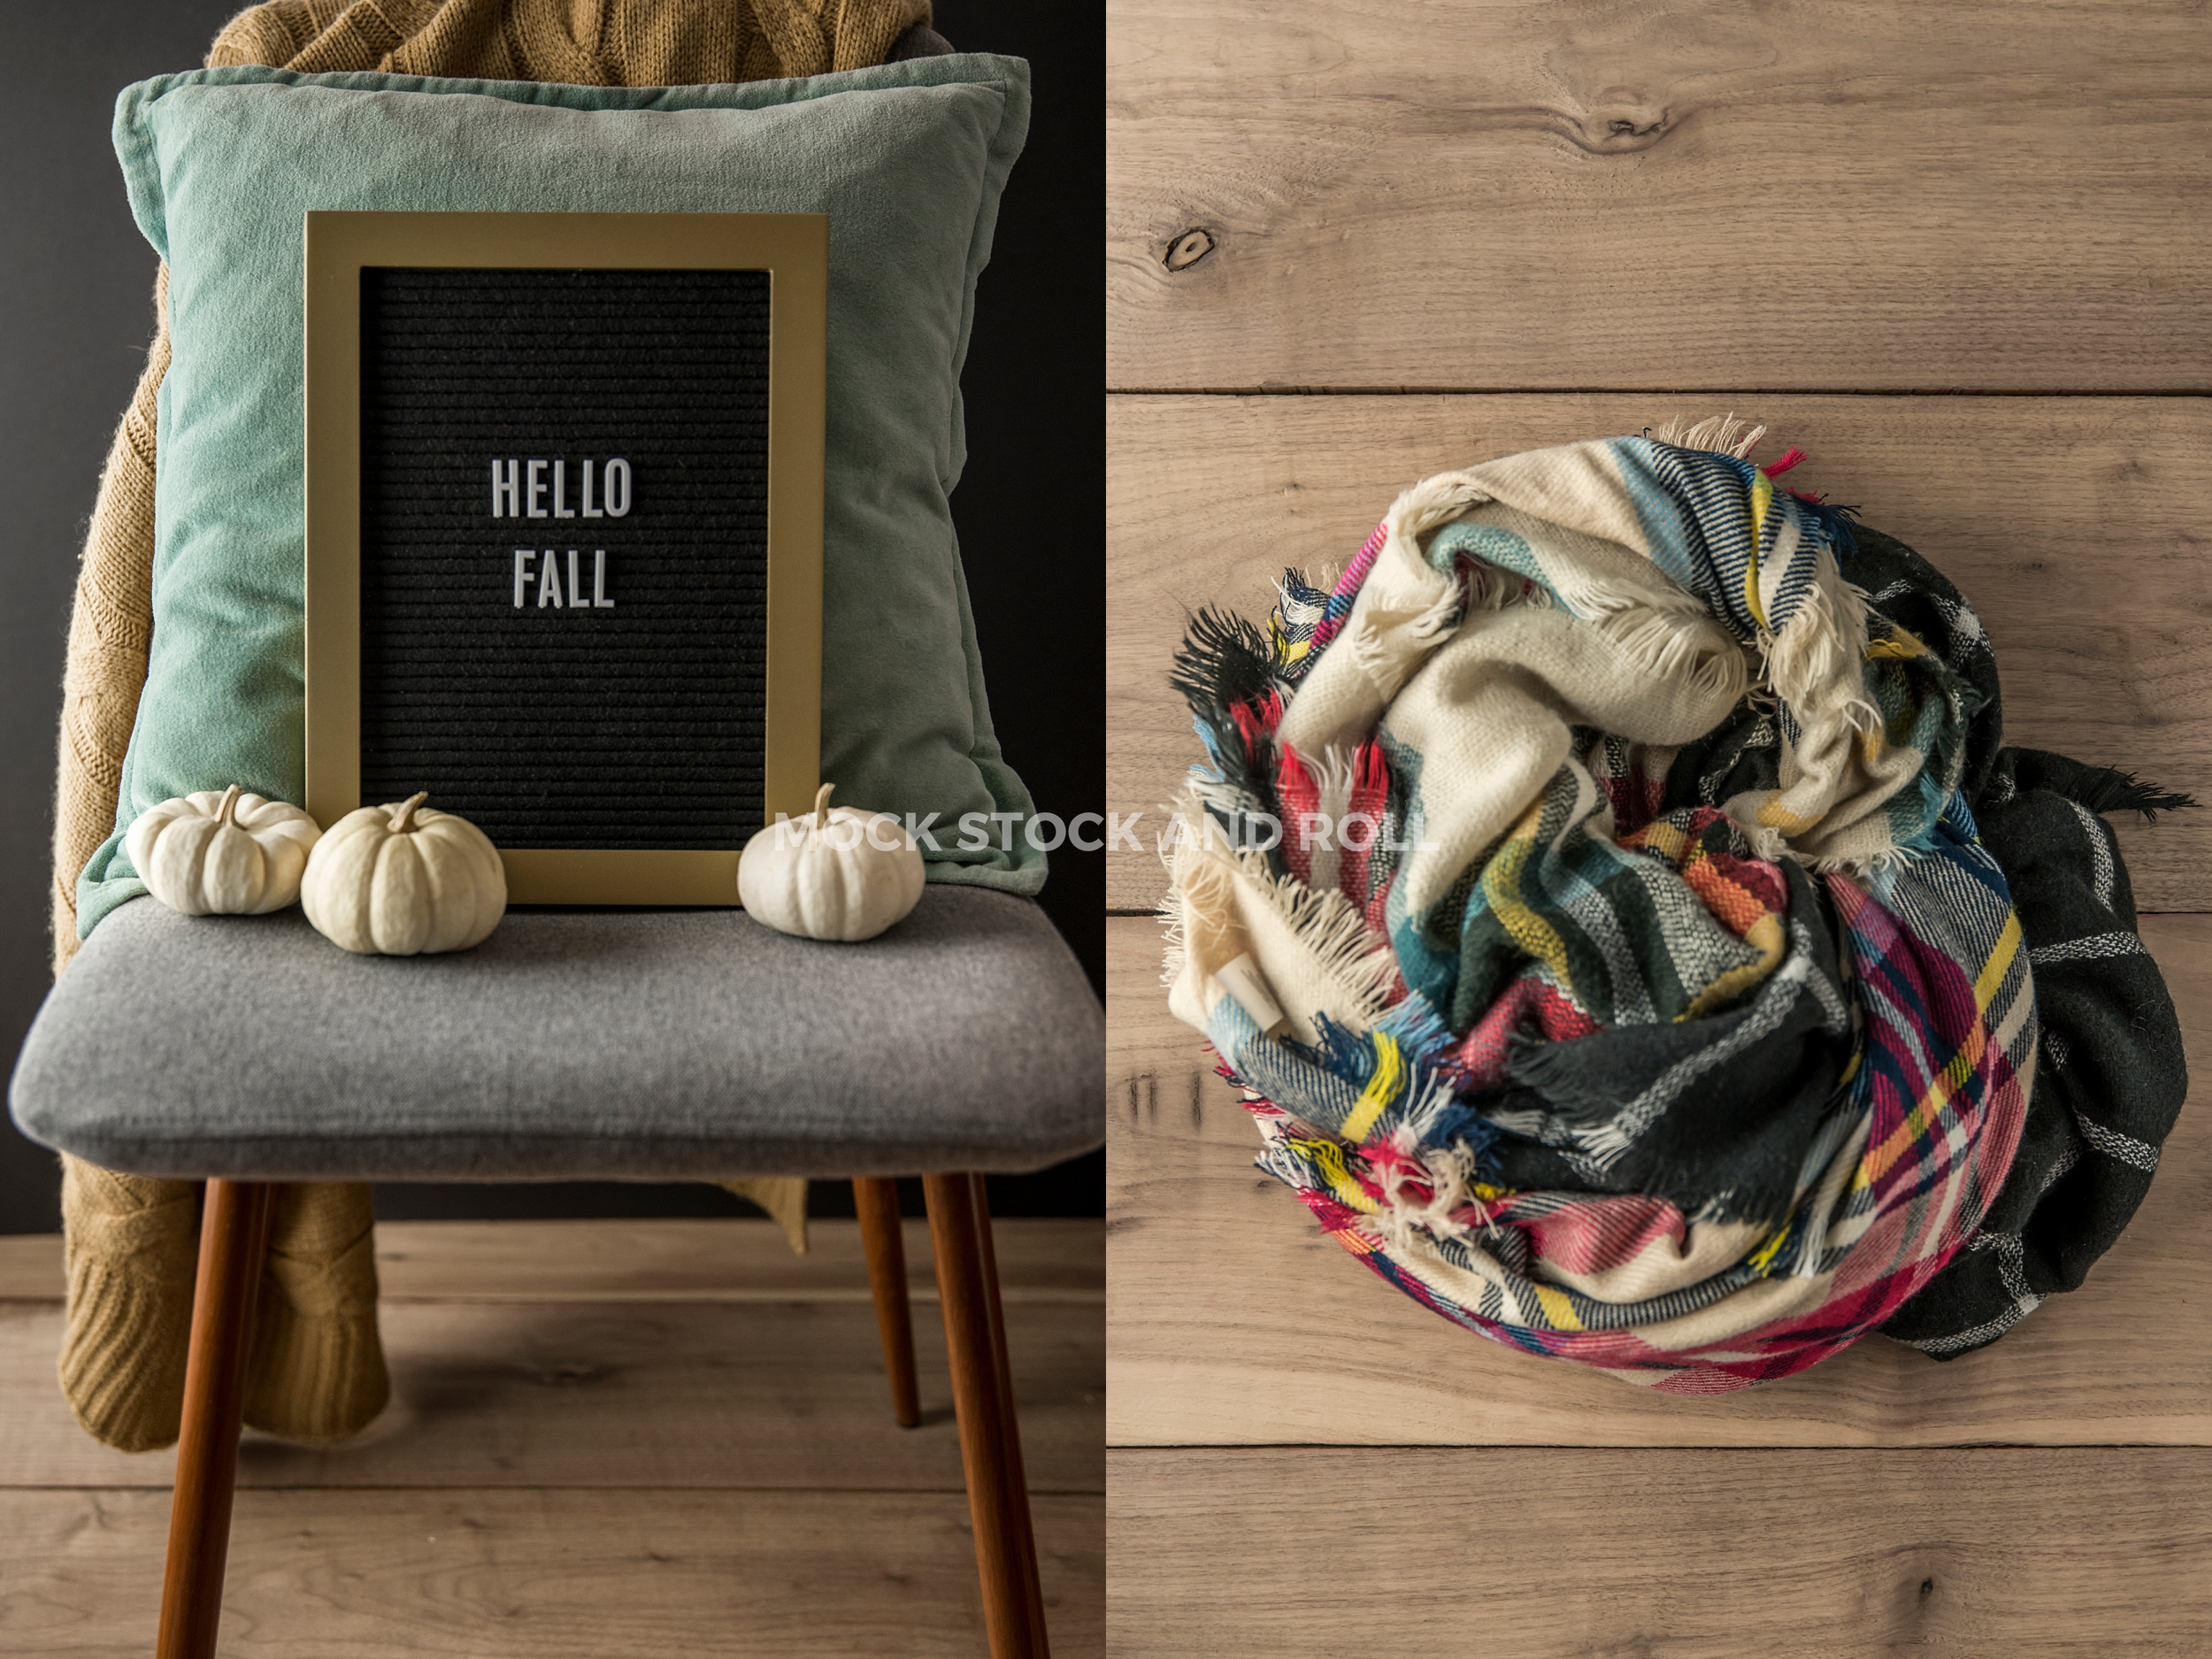 Unique fall styled stock photos from Mock Stock and Roll: Hello Fall and Blanket Scarves